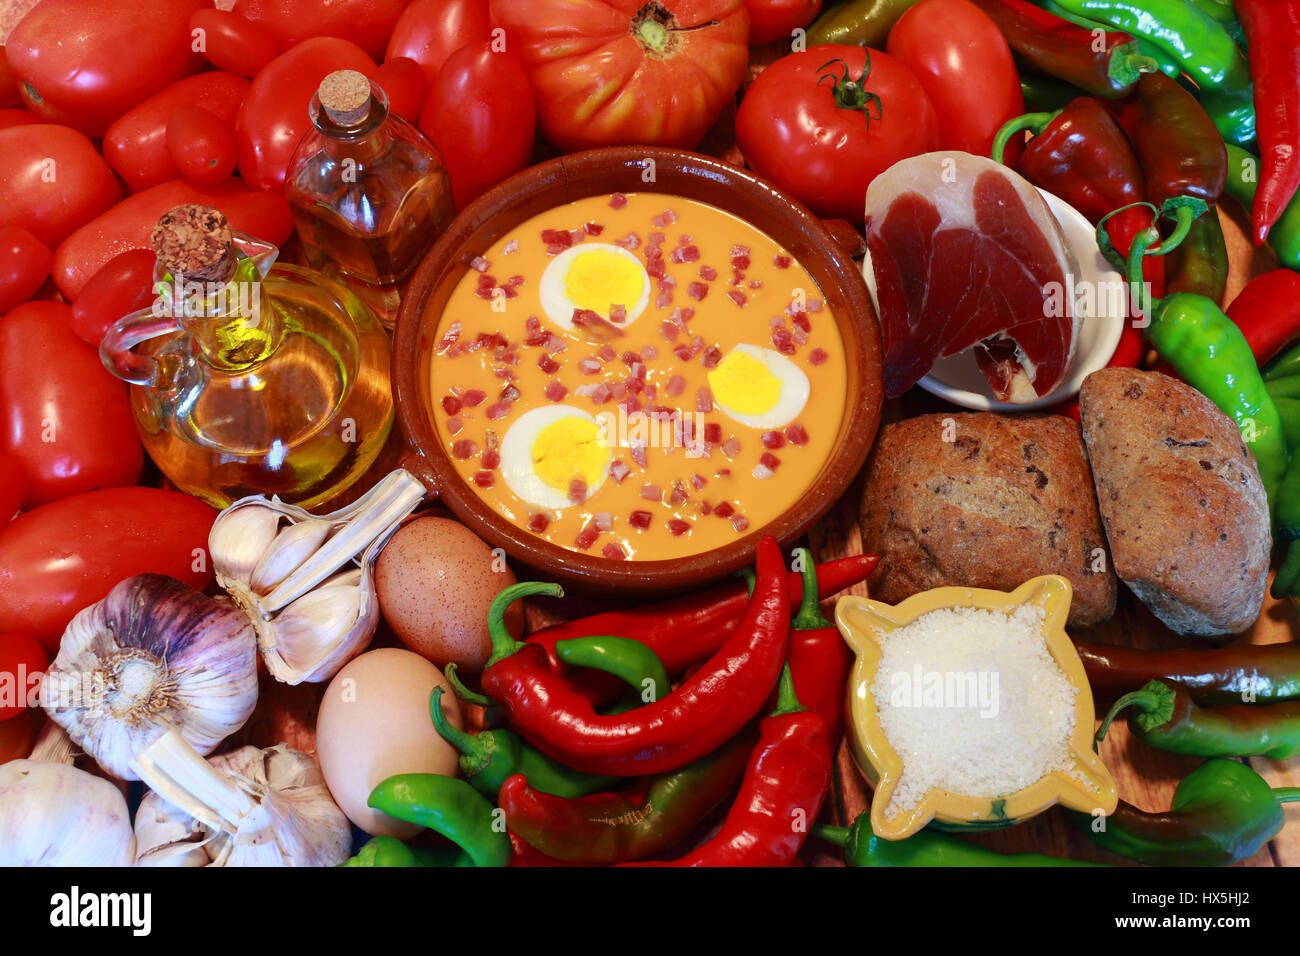 Salmorejo is a typical food of Andalusia, in southern Spain. Its ingredients are tomato, pepper, bread, garlic, - Stock Image